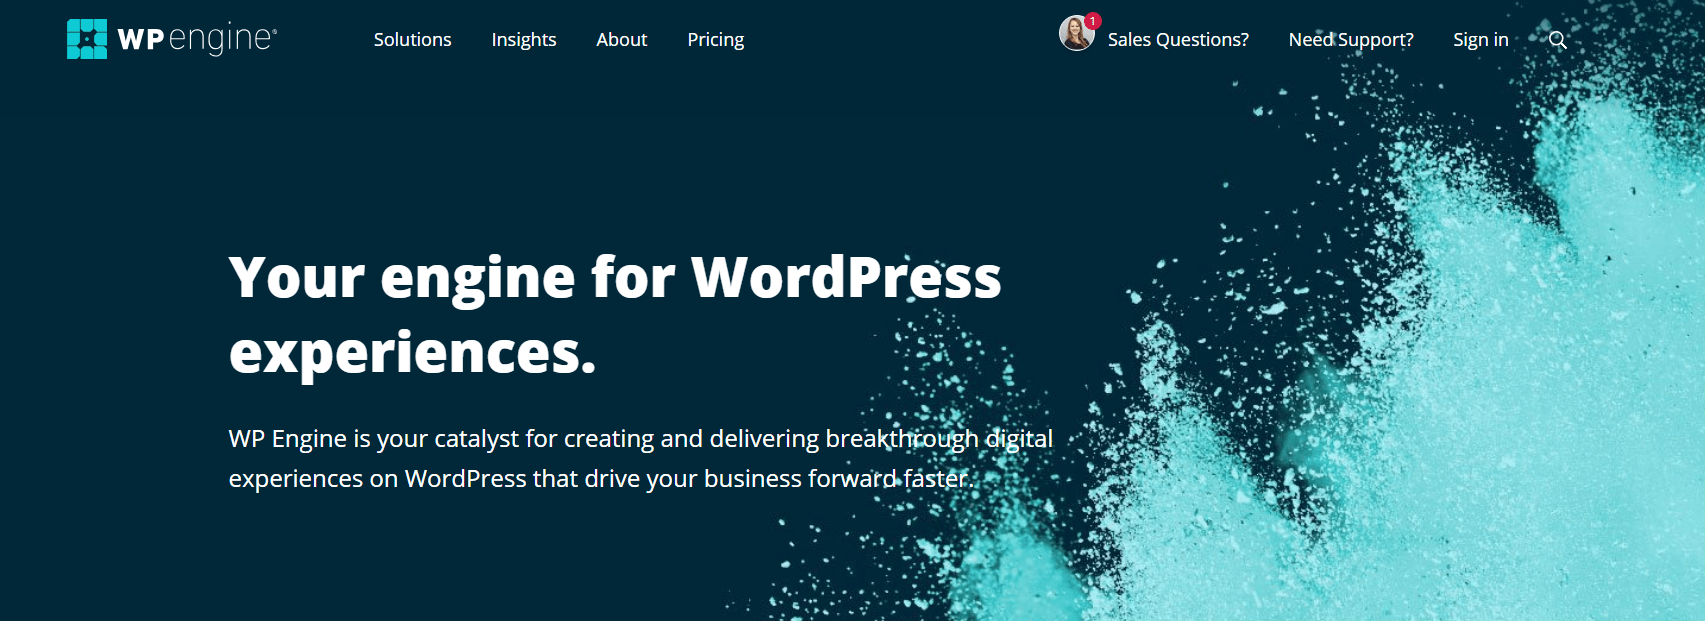 Financing WP Engine WordPress Hosting